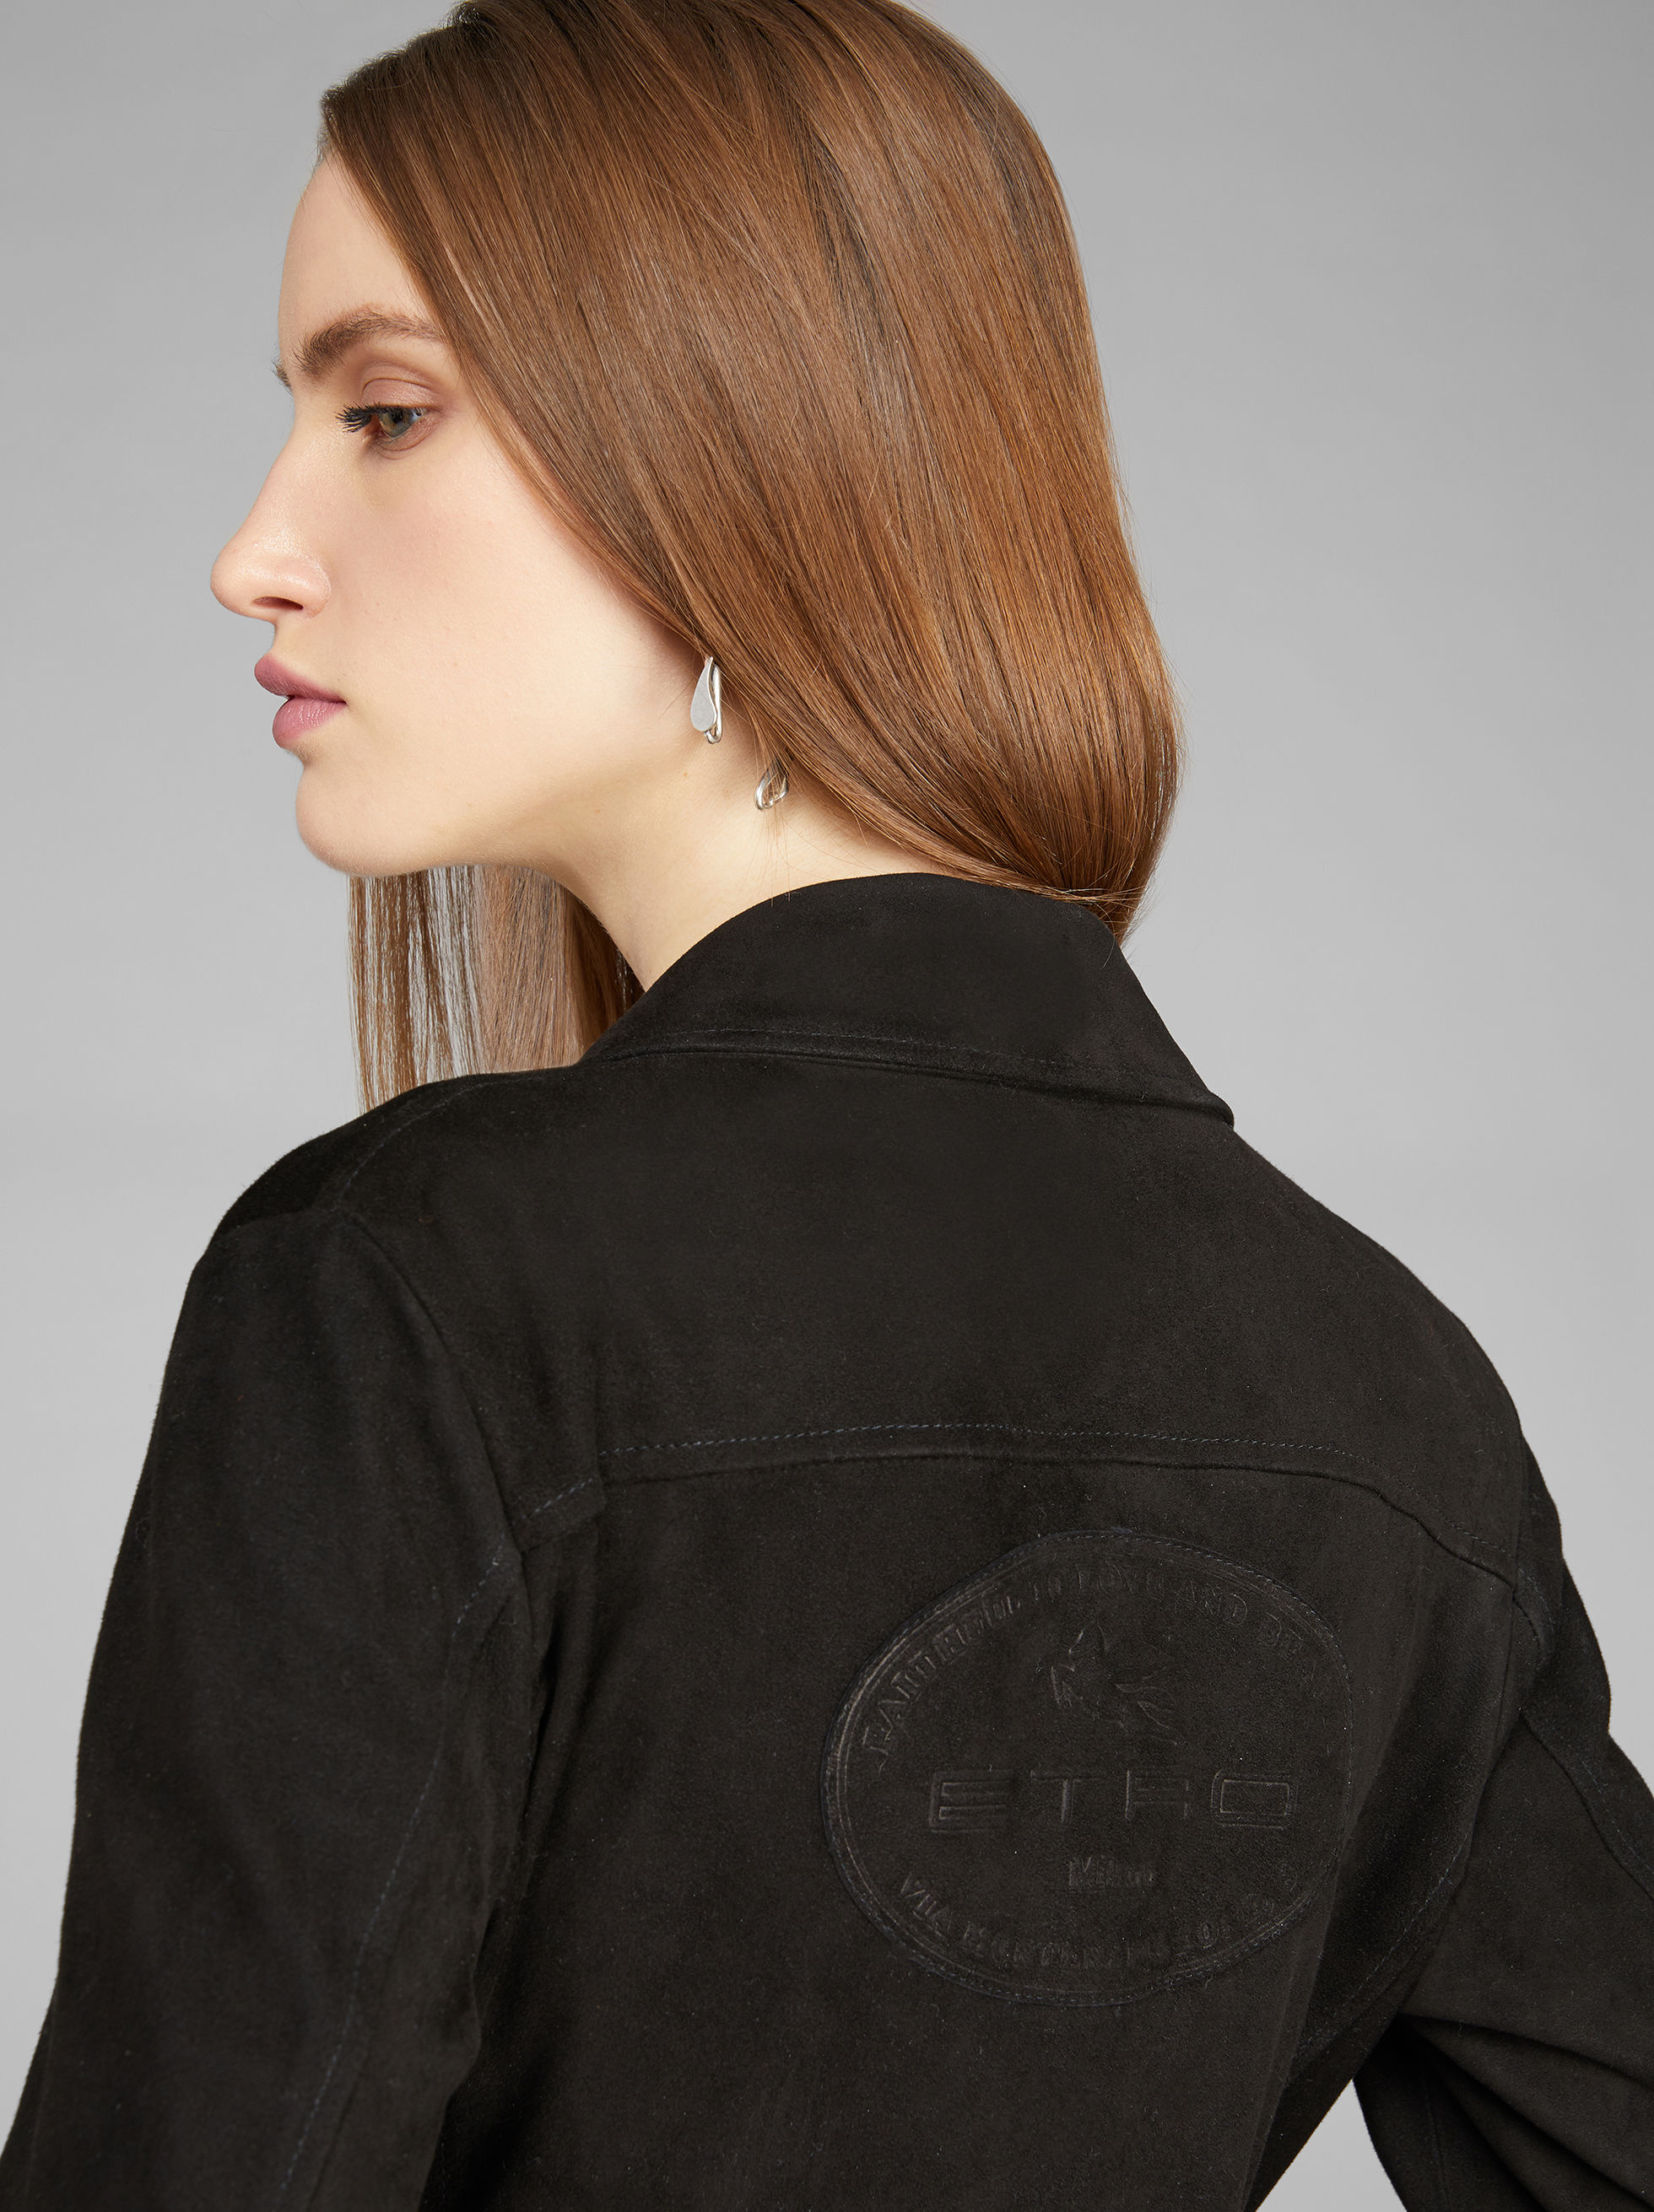 SUEDE JACKET WITH LOGO